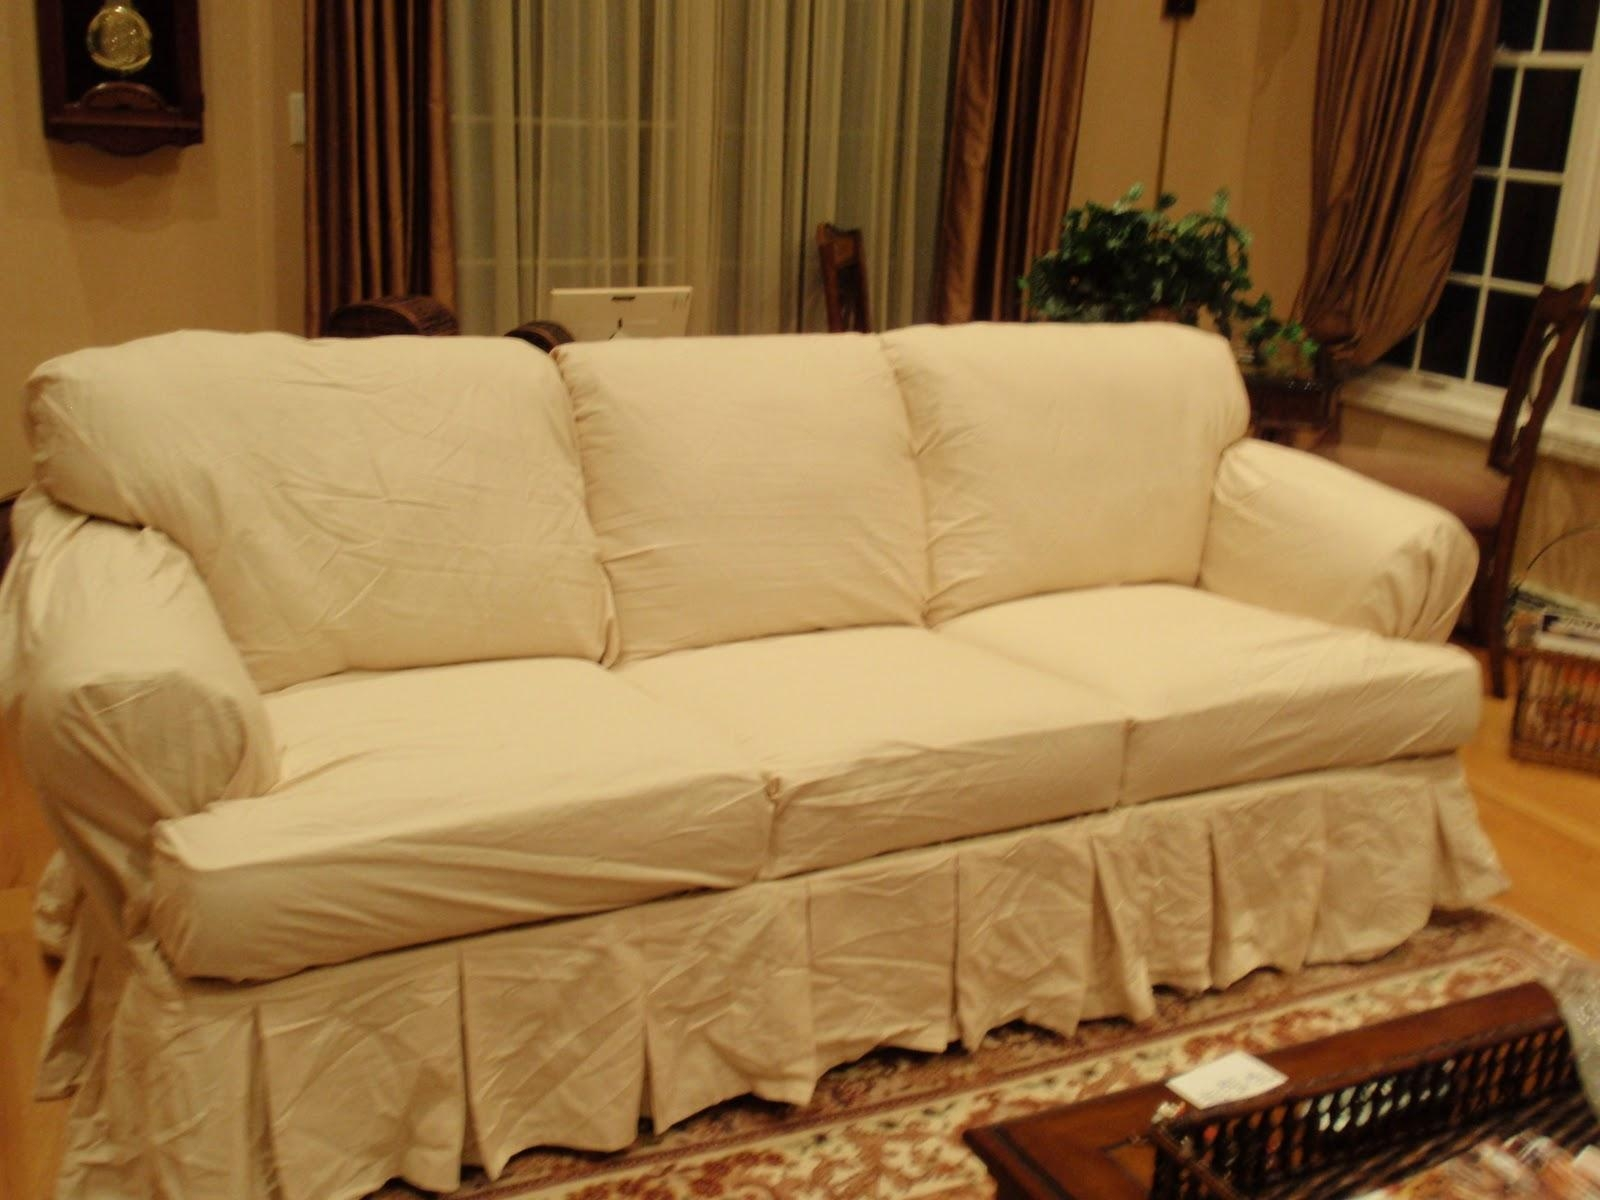 Furniture: Slipcovers For Sectional Sofa | 3 Cushion Sofa Regarding Slipcovers For 3 Cushion Sofas (Image 4 of 20)